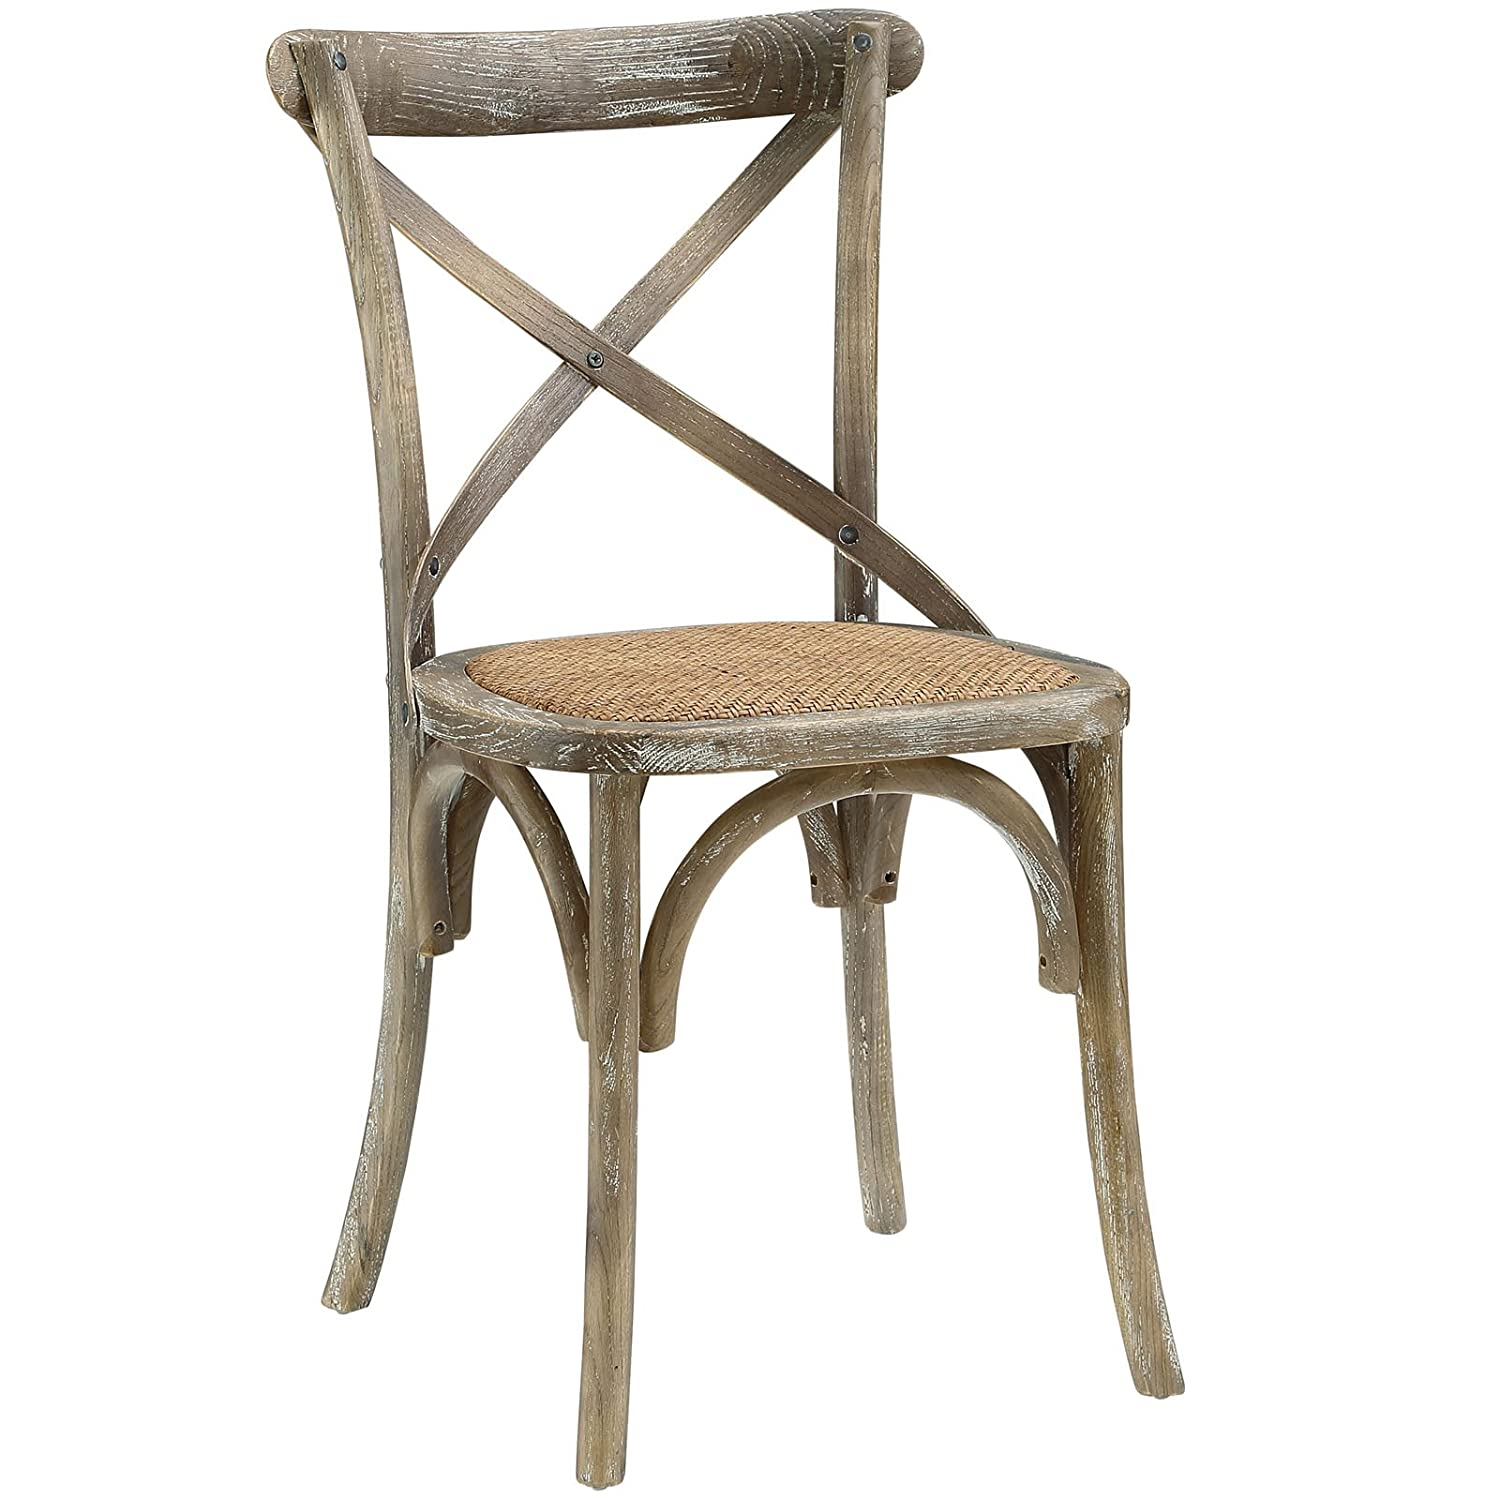 Cross back wood farmhouse style chair. 5 Fixer Upper Paint Colors & 25 Decorating Ideas.